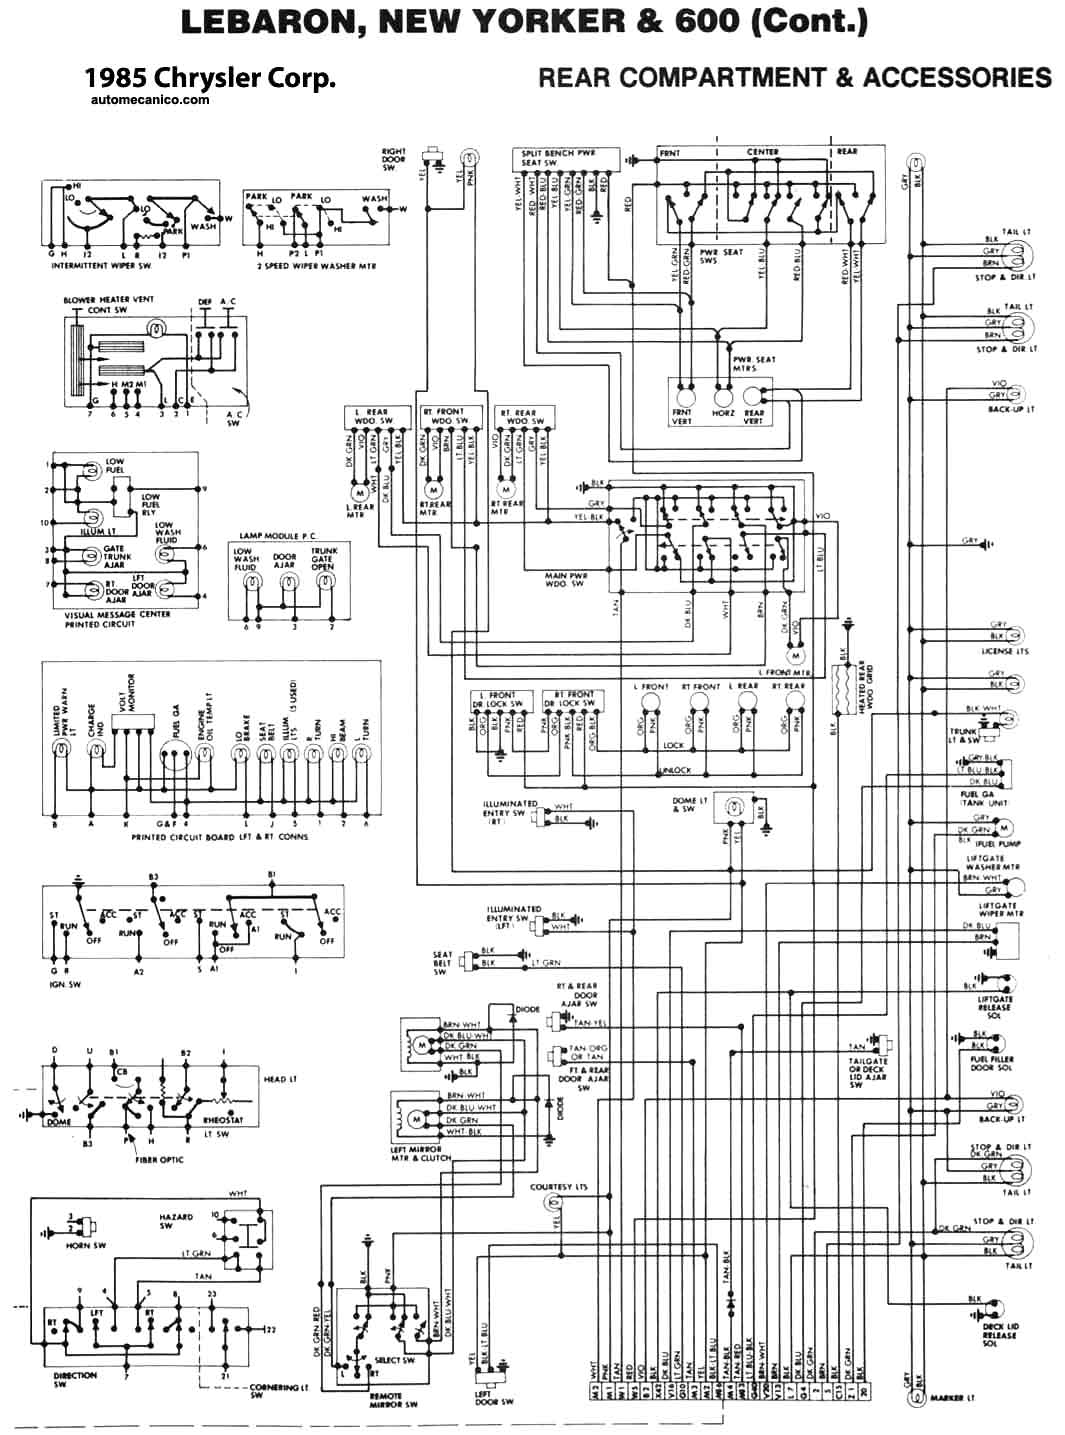 Catalytic Converter additionally Maserati Wiring Diagrams as well Dodge Spirit Serpentine Belt Diagram further P 0900c15280087b80 moreover How To Remove Serpentine Belt On A 1994 Land Rover Defender. on 1985 chrysler lebaron